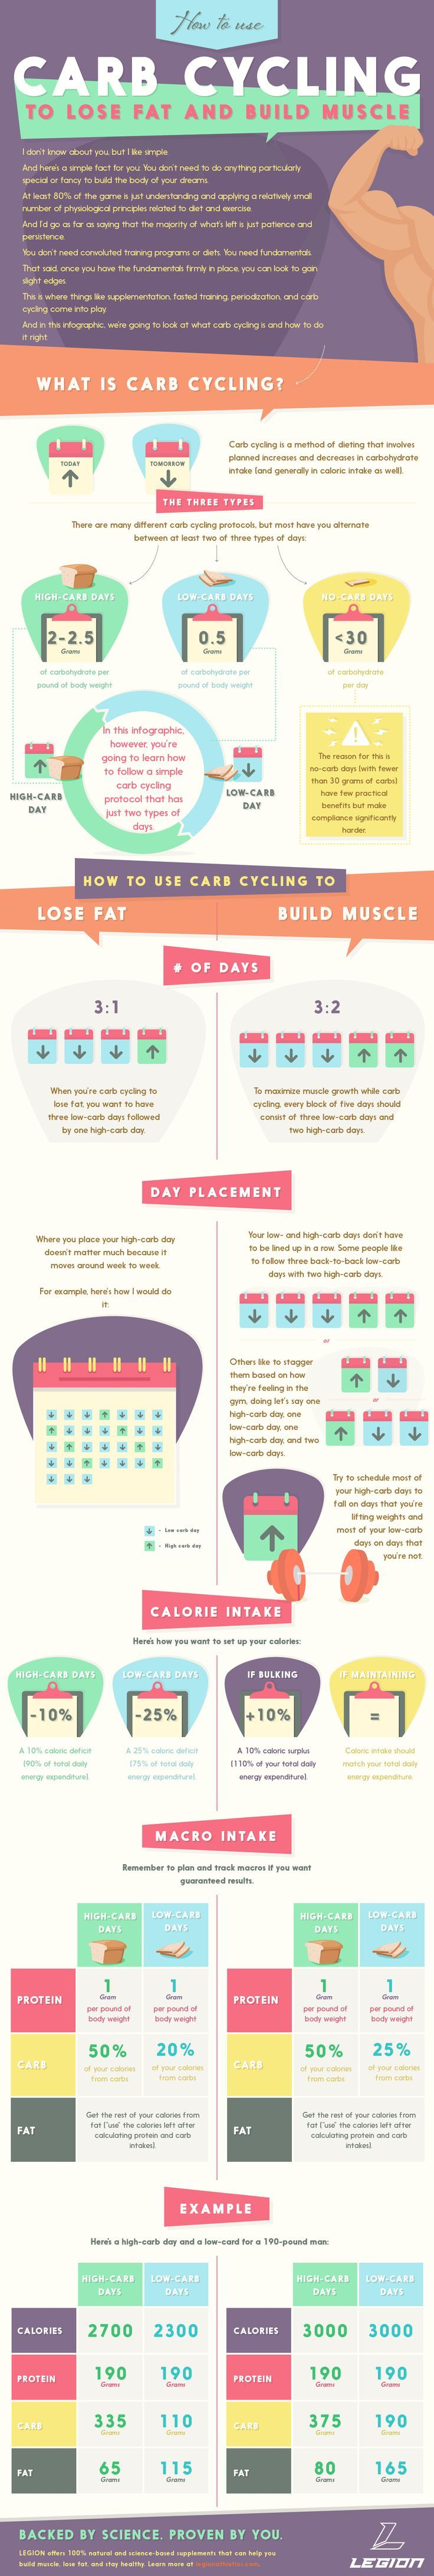 Photo of [INFOGRAPHIC] The Science of Carb Cycling: Ho